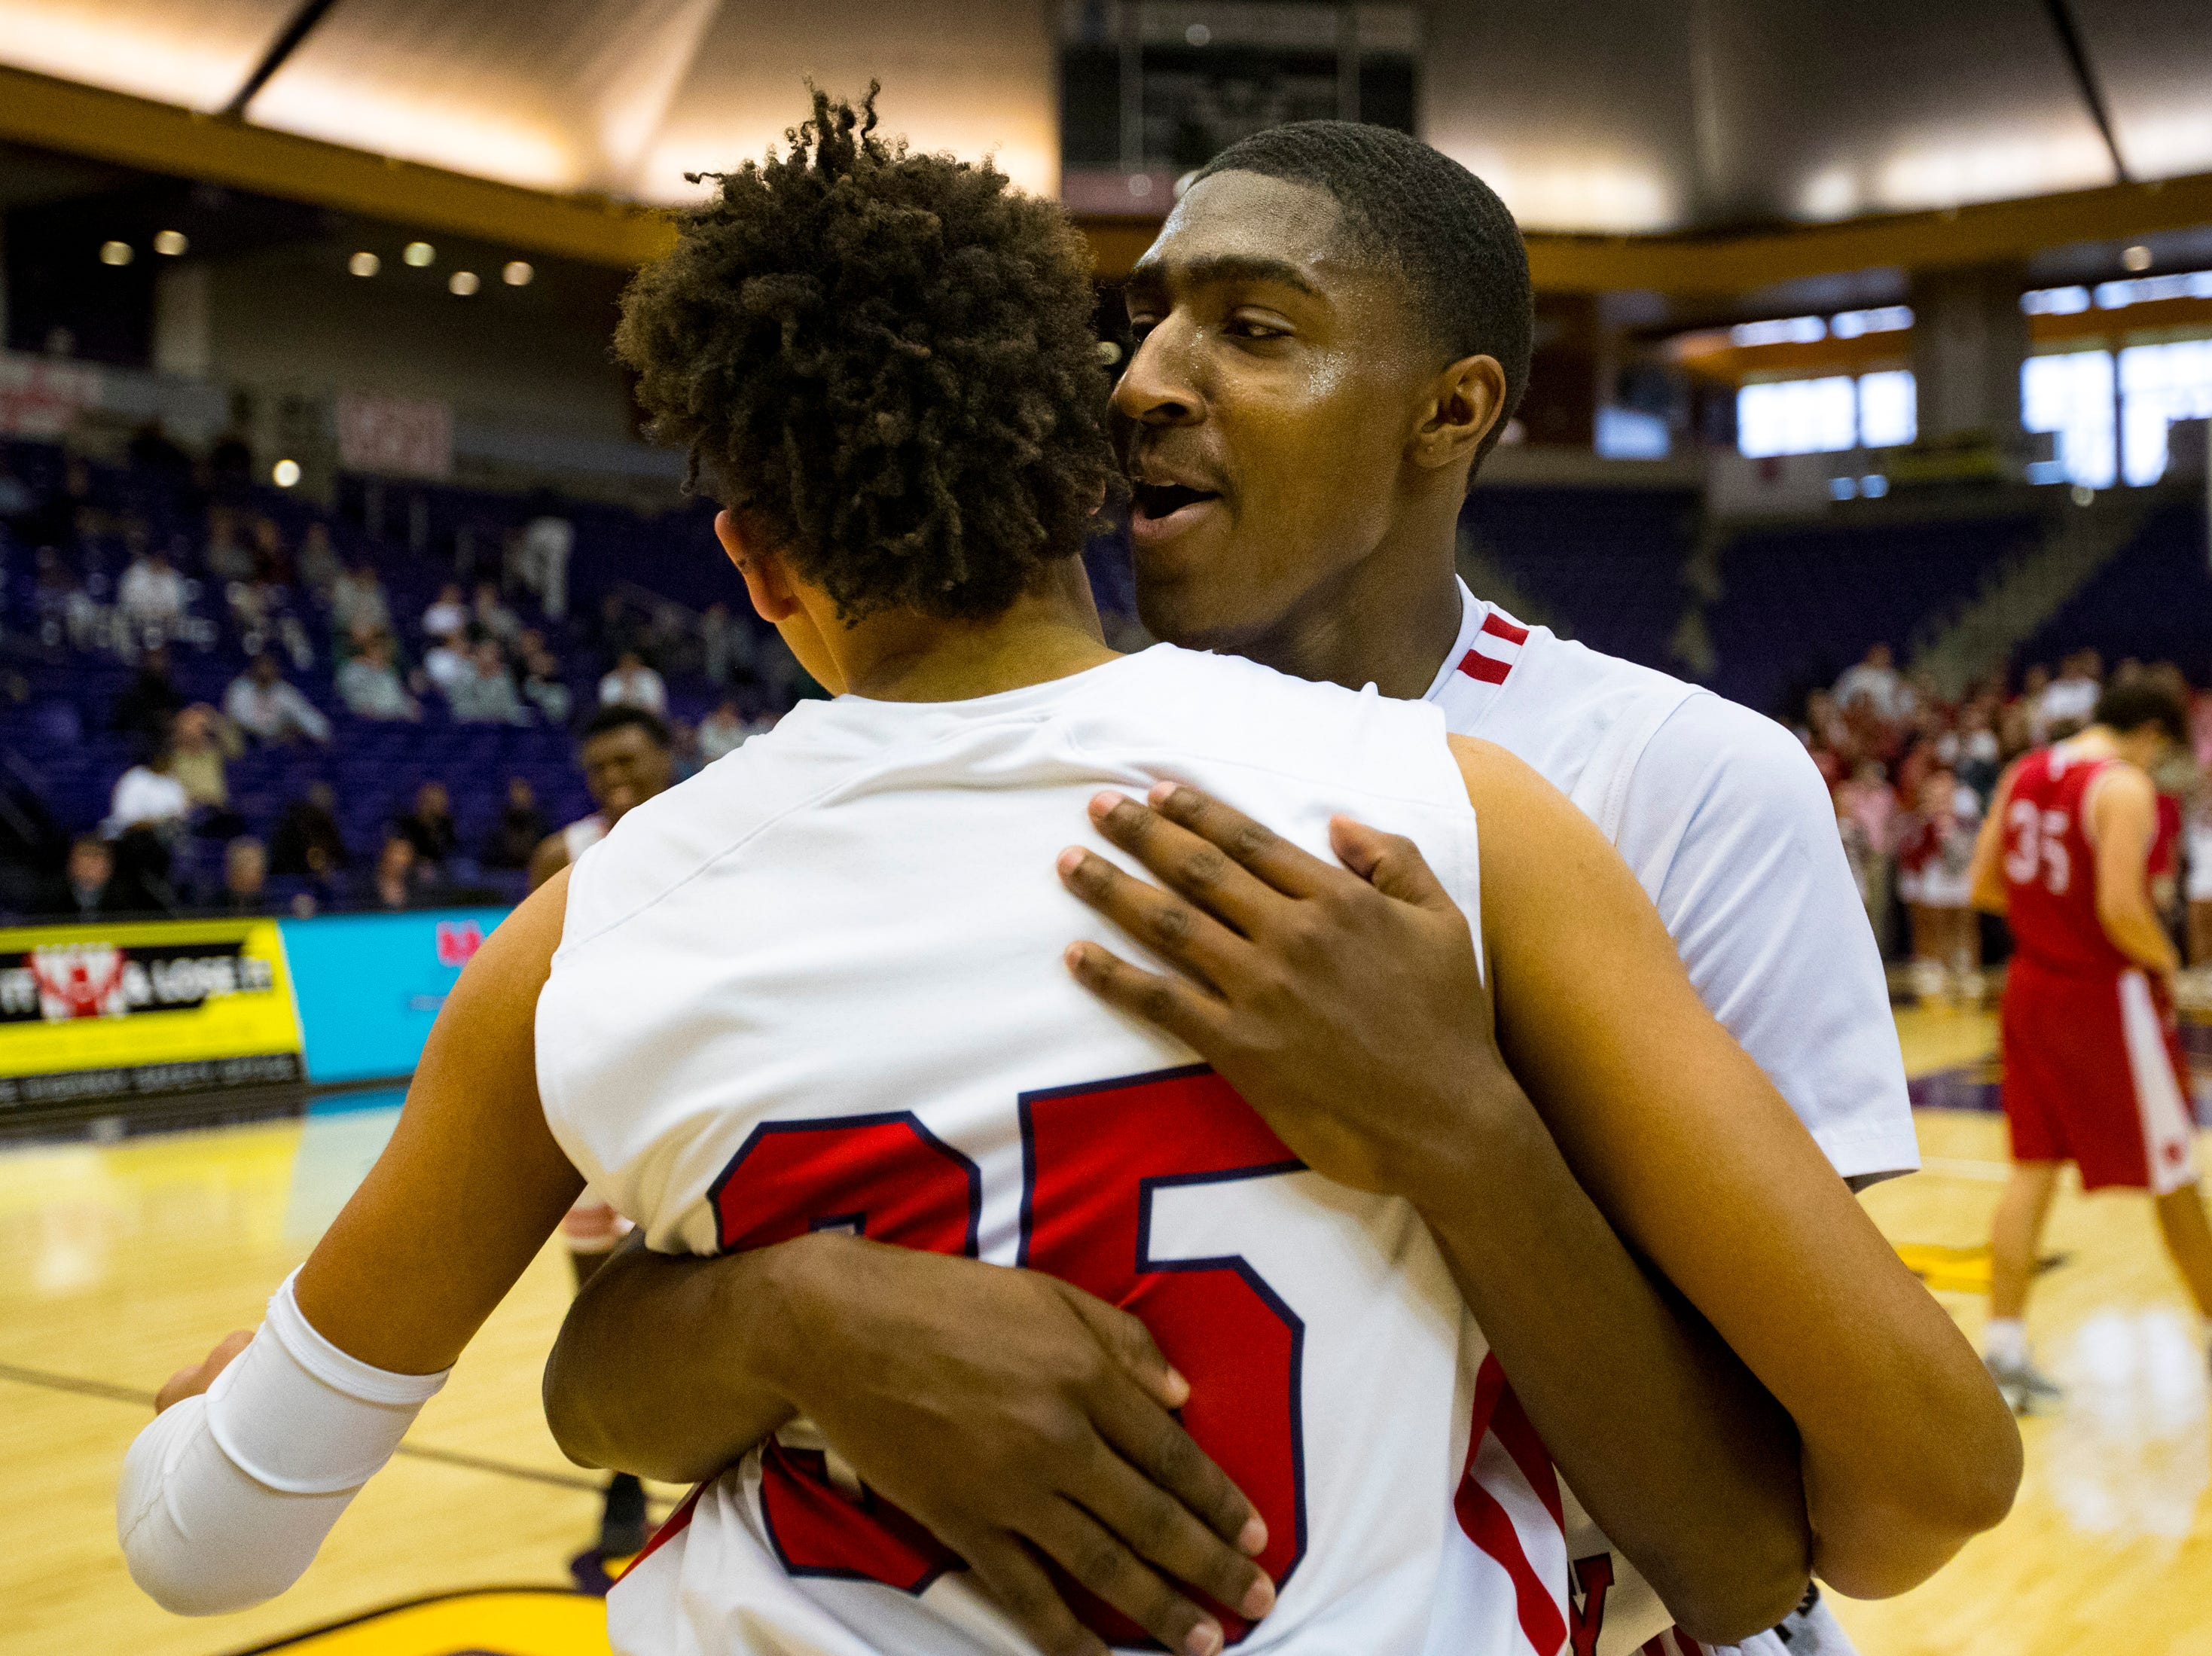 Brentwood Academy's Randy Brady (34) hugs Brentwood Academy's DJ Senter (35) after Brentwood Academy's game against Baylor in the semifinal round of the TSSAA Division II Class AA State Championships at Lipscomb University's Allen Arena in Nashville on Thursday, Feb. 28, 2019.